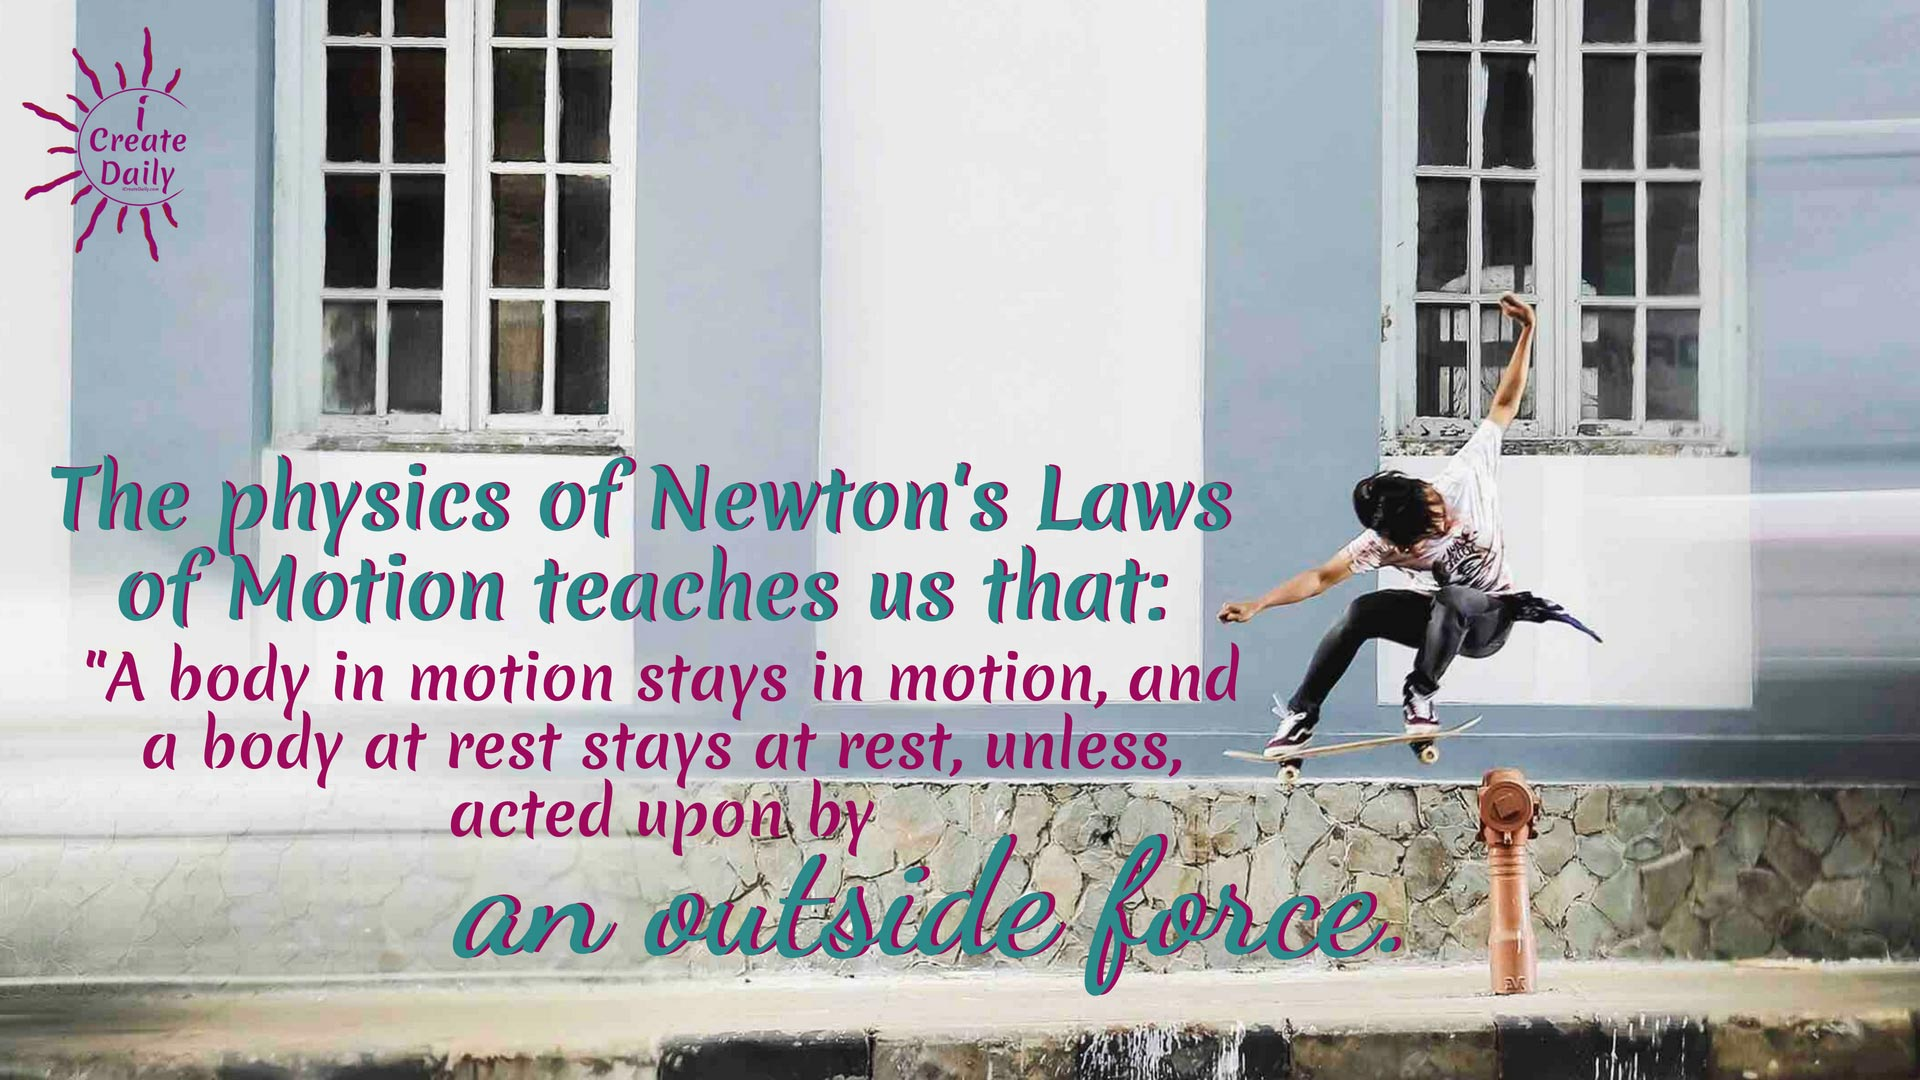 """If you could use some momentum quotes to inspire your way today, you're in the right place! The physics of Newton's Laws of Motion teaches us that: A body in motion stays in motion, and a body at rest, stays at rest, unless acted upon by an outside force."""" #MomentumQuotes #Motivation #AchievingGoals #TakeAction #LawOfMotion"""